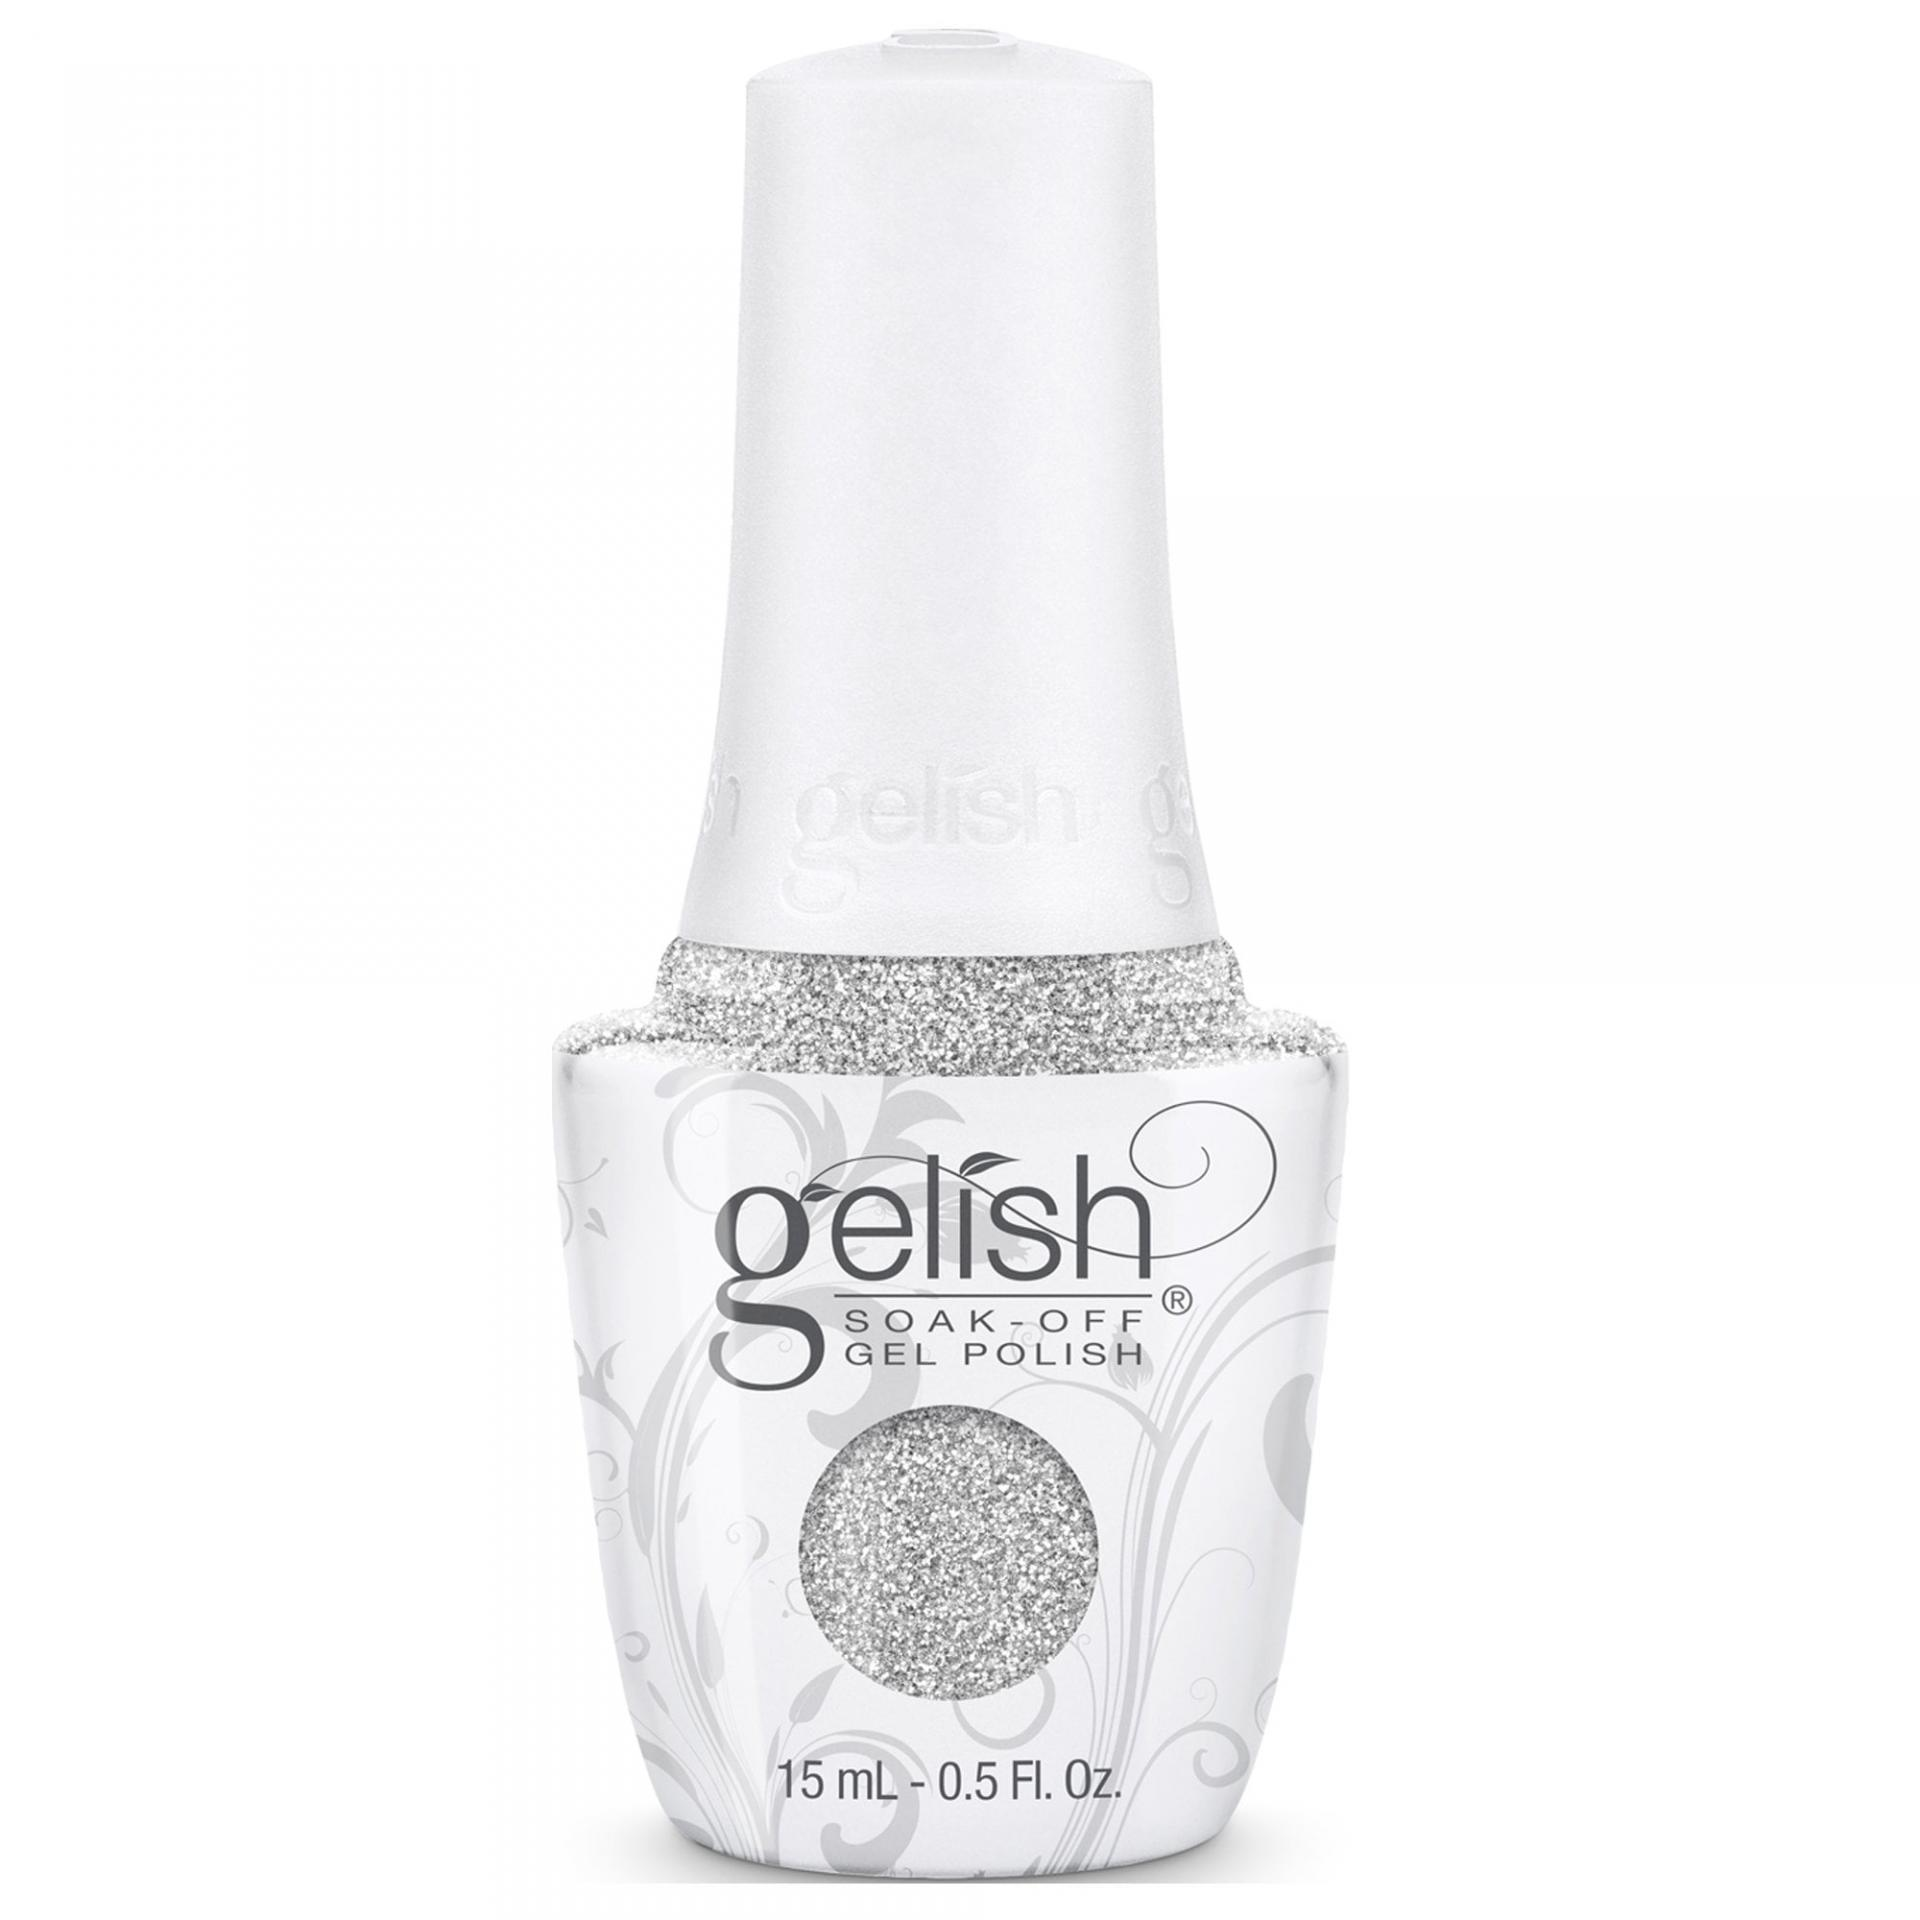 Gelish forever fabulous 2018 gel polish collection diamonds are my bff 15ml 1110334 p25749 100376 zoom